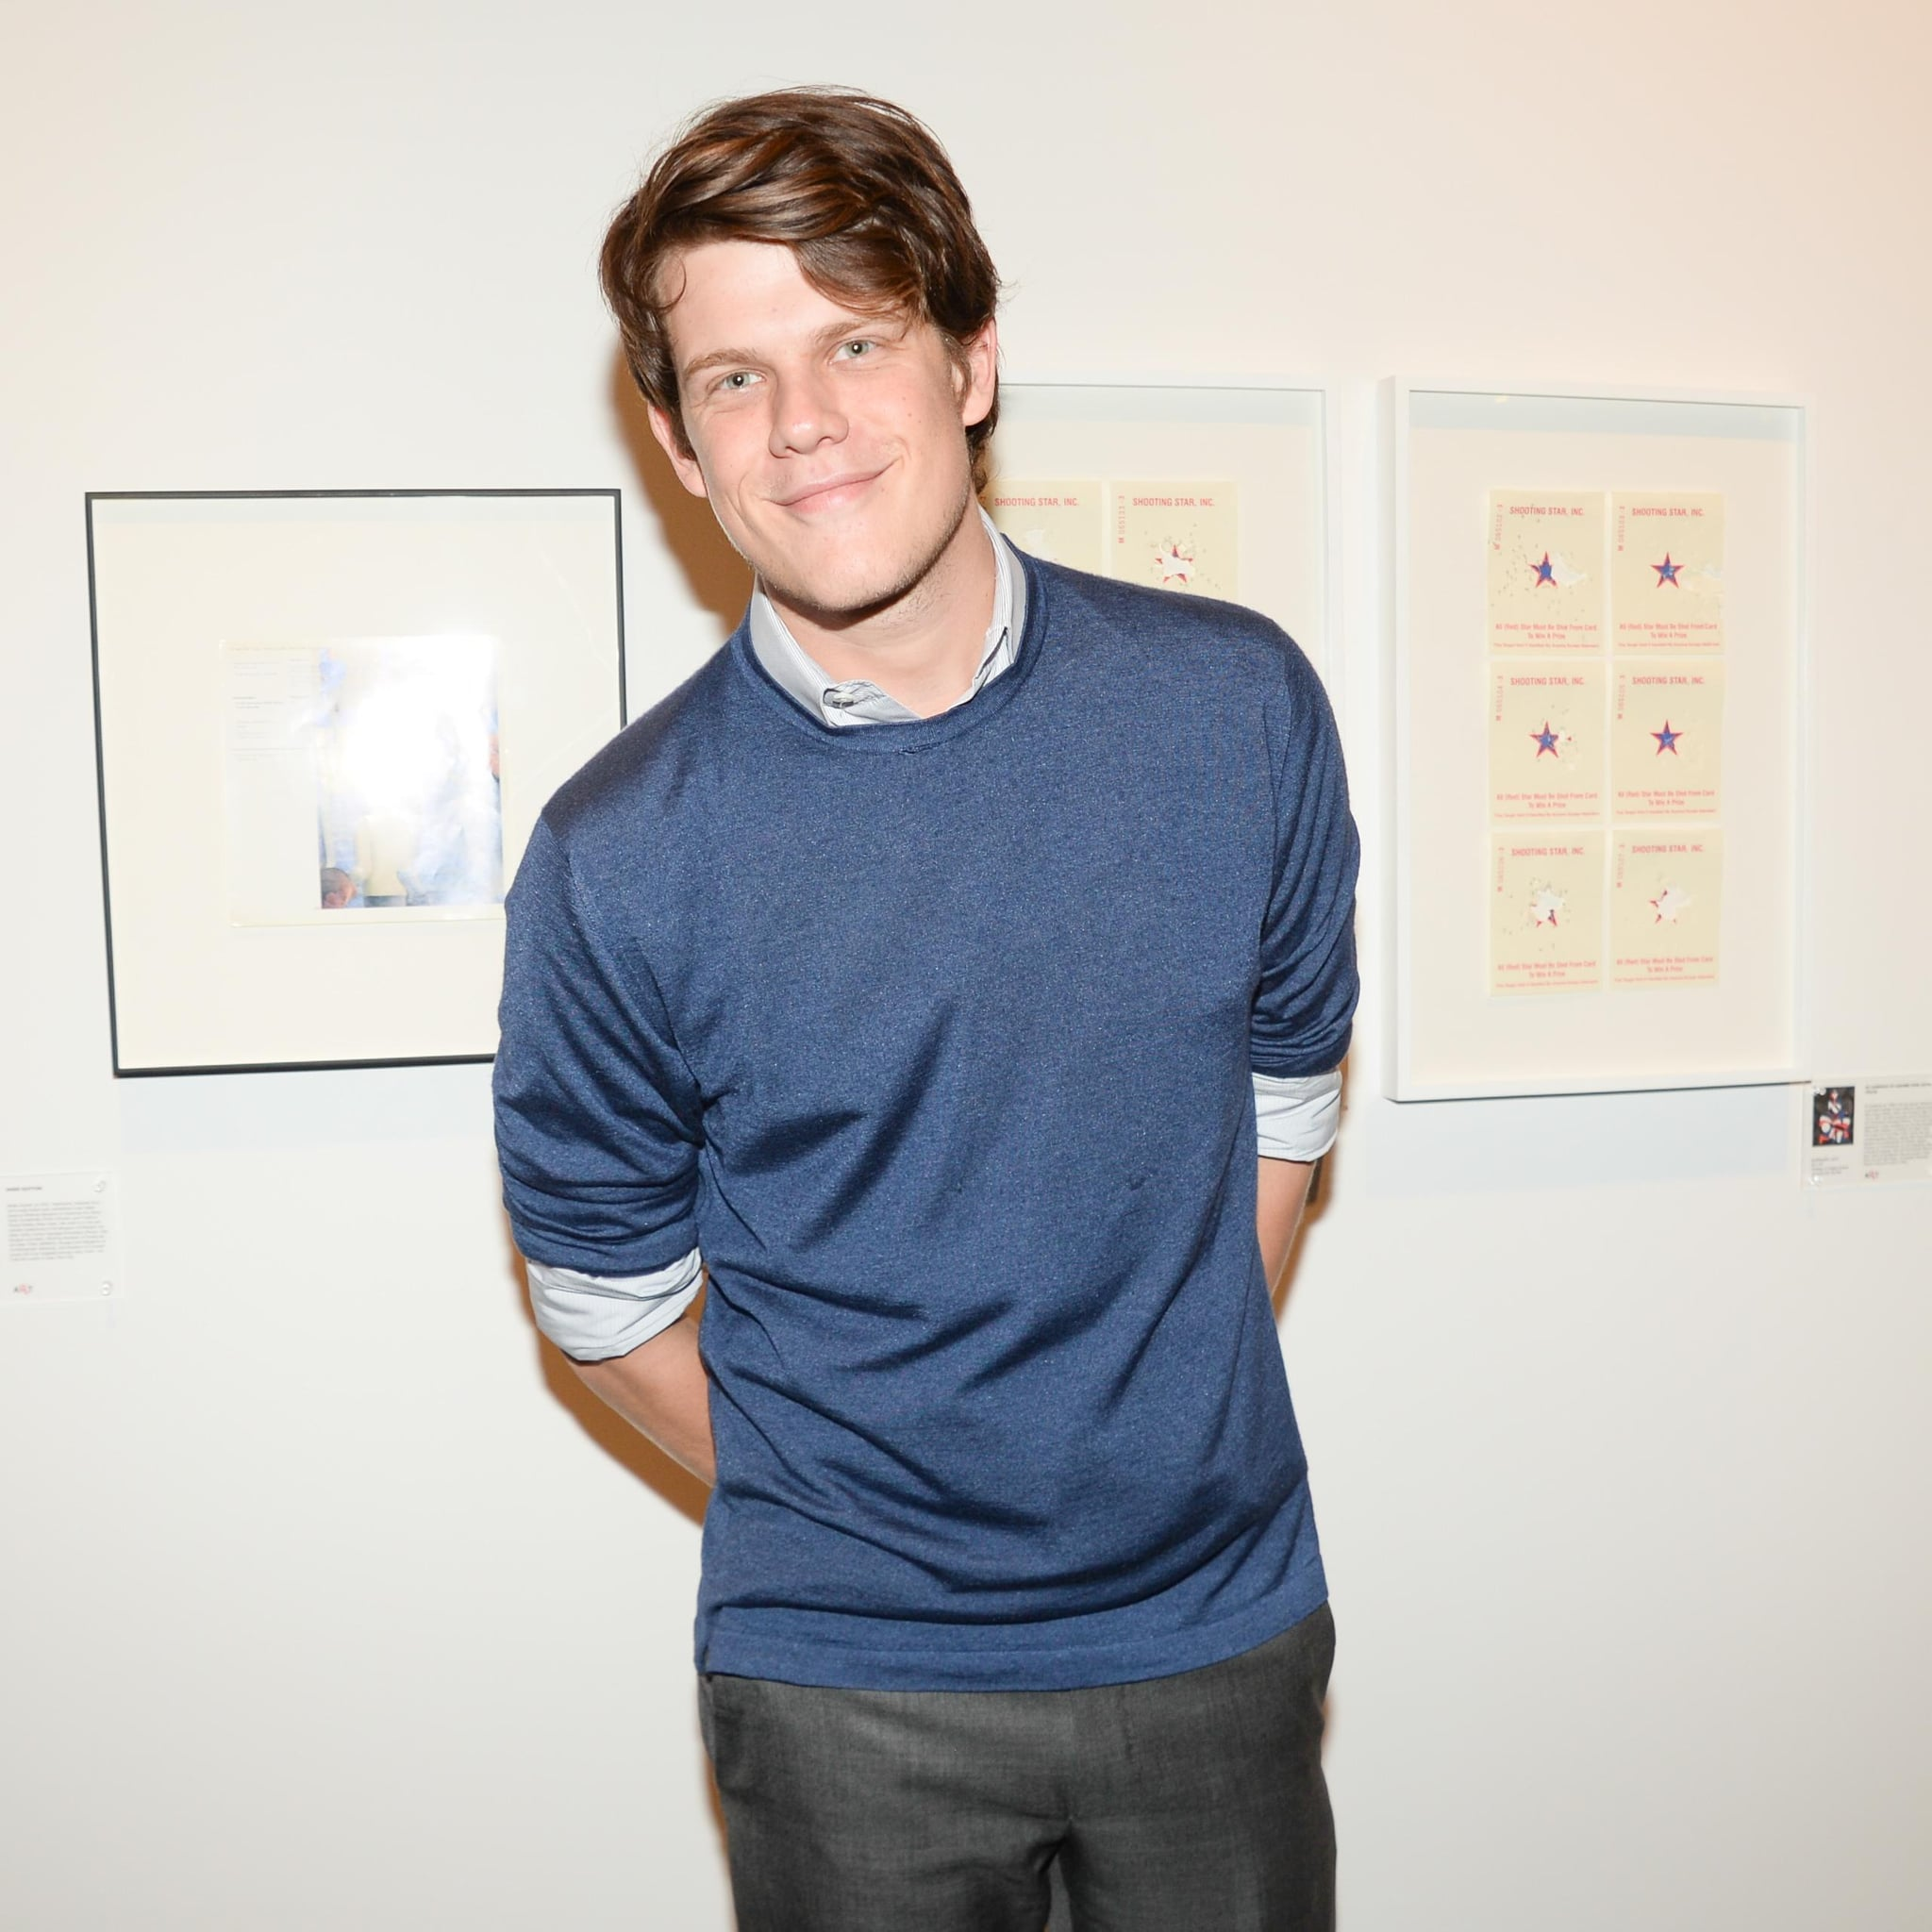 Wes Gordon arrived for the Annual RxArt Party Honors in a layered autumnal ensemble.